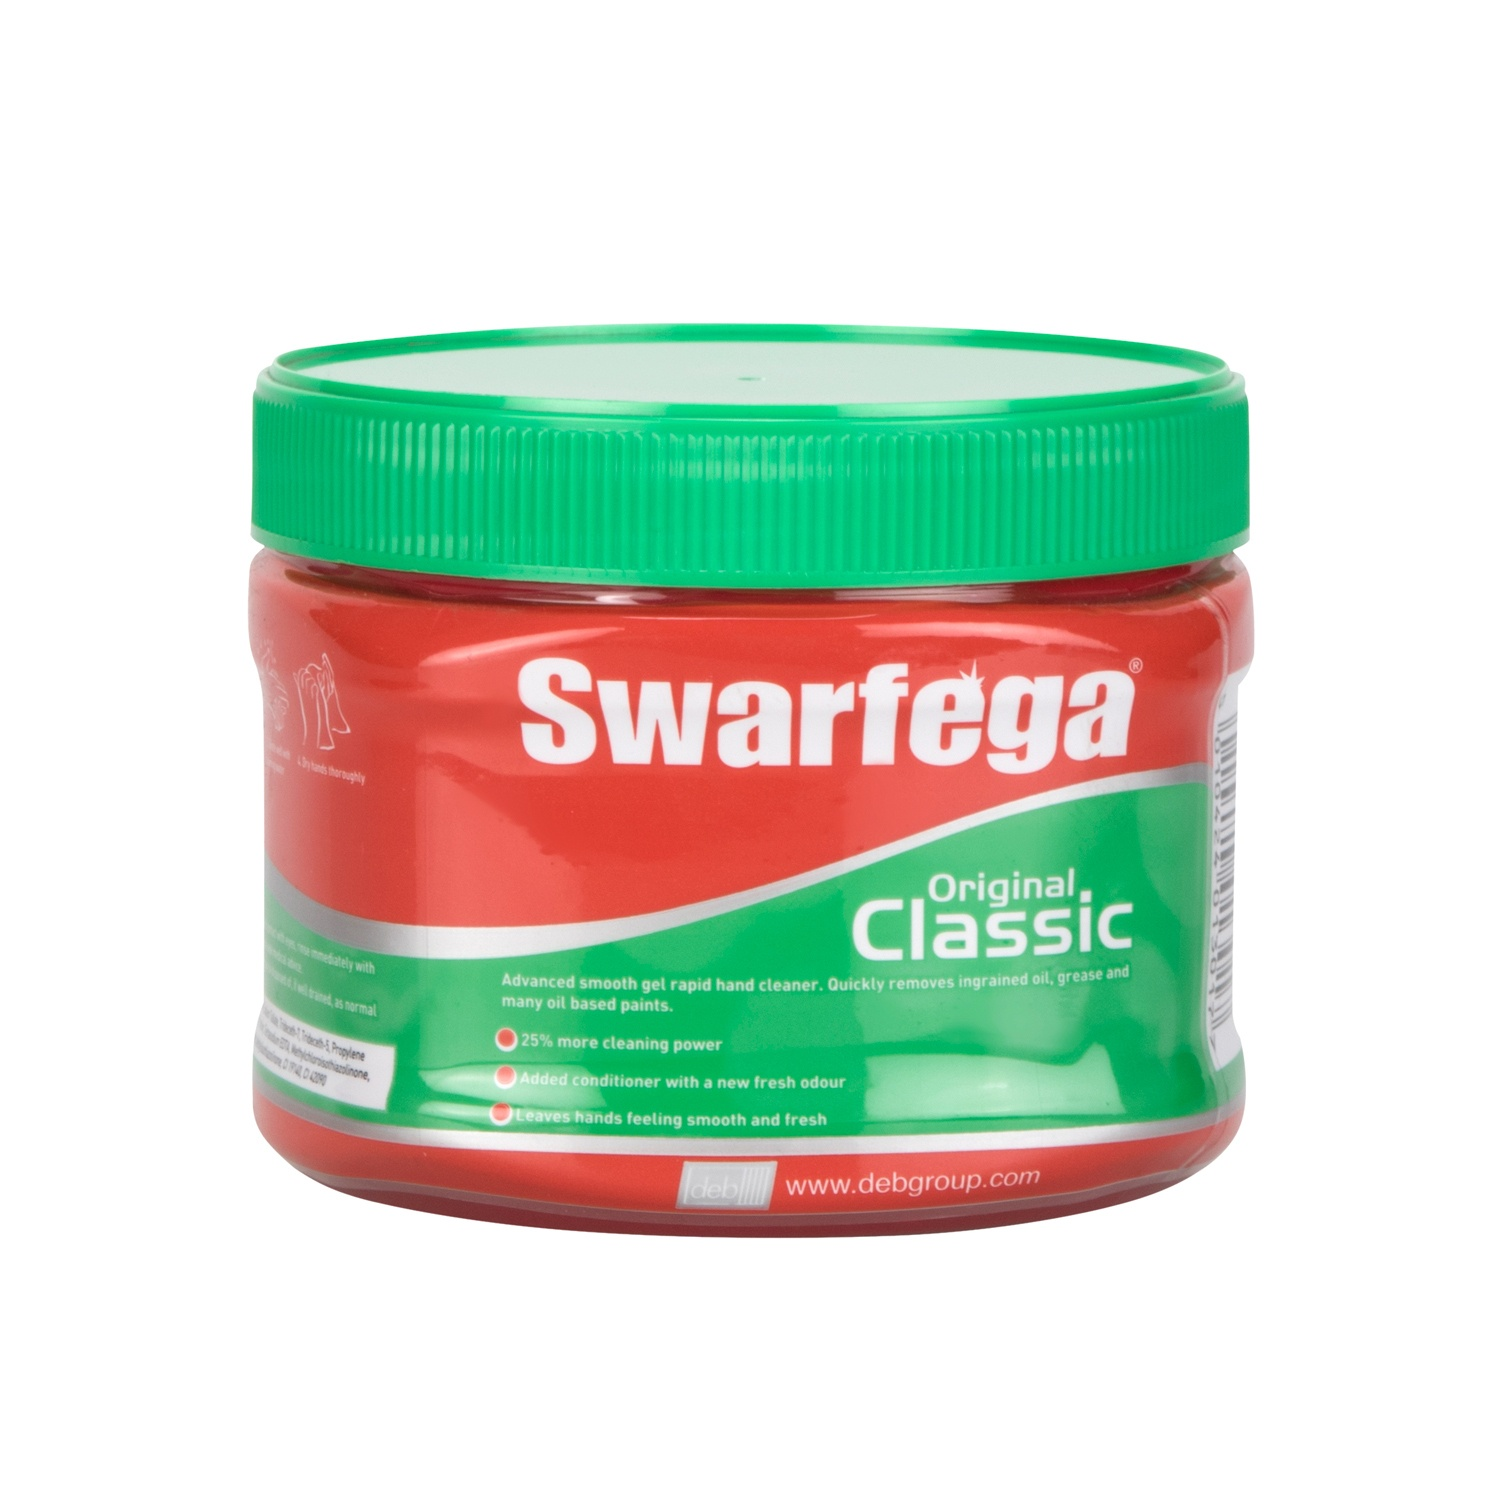 Swarfega Original Classic Green Hand Cleaner 500ml